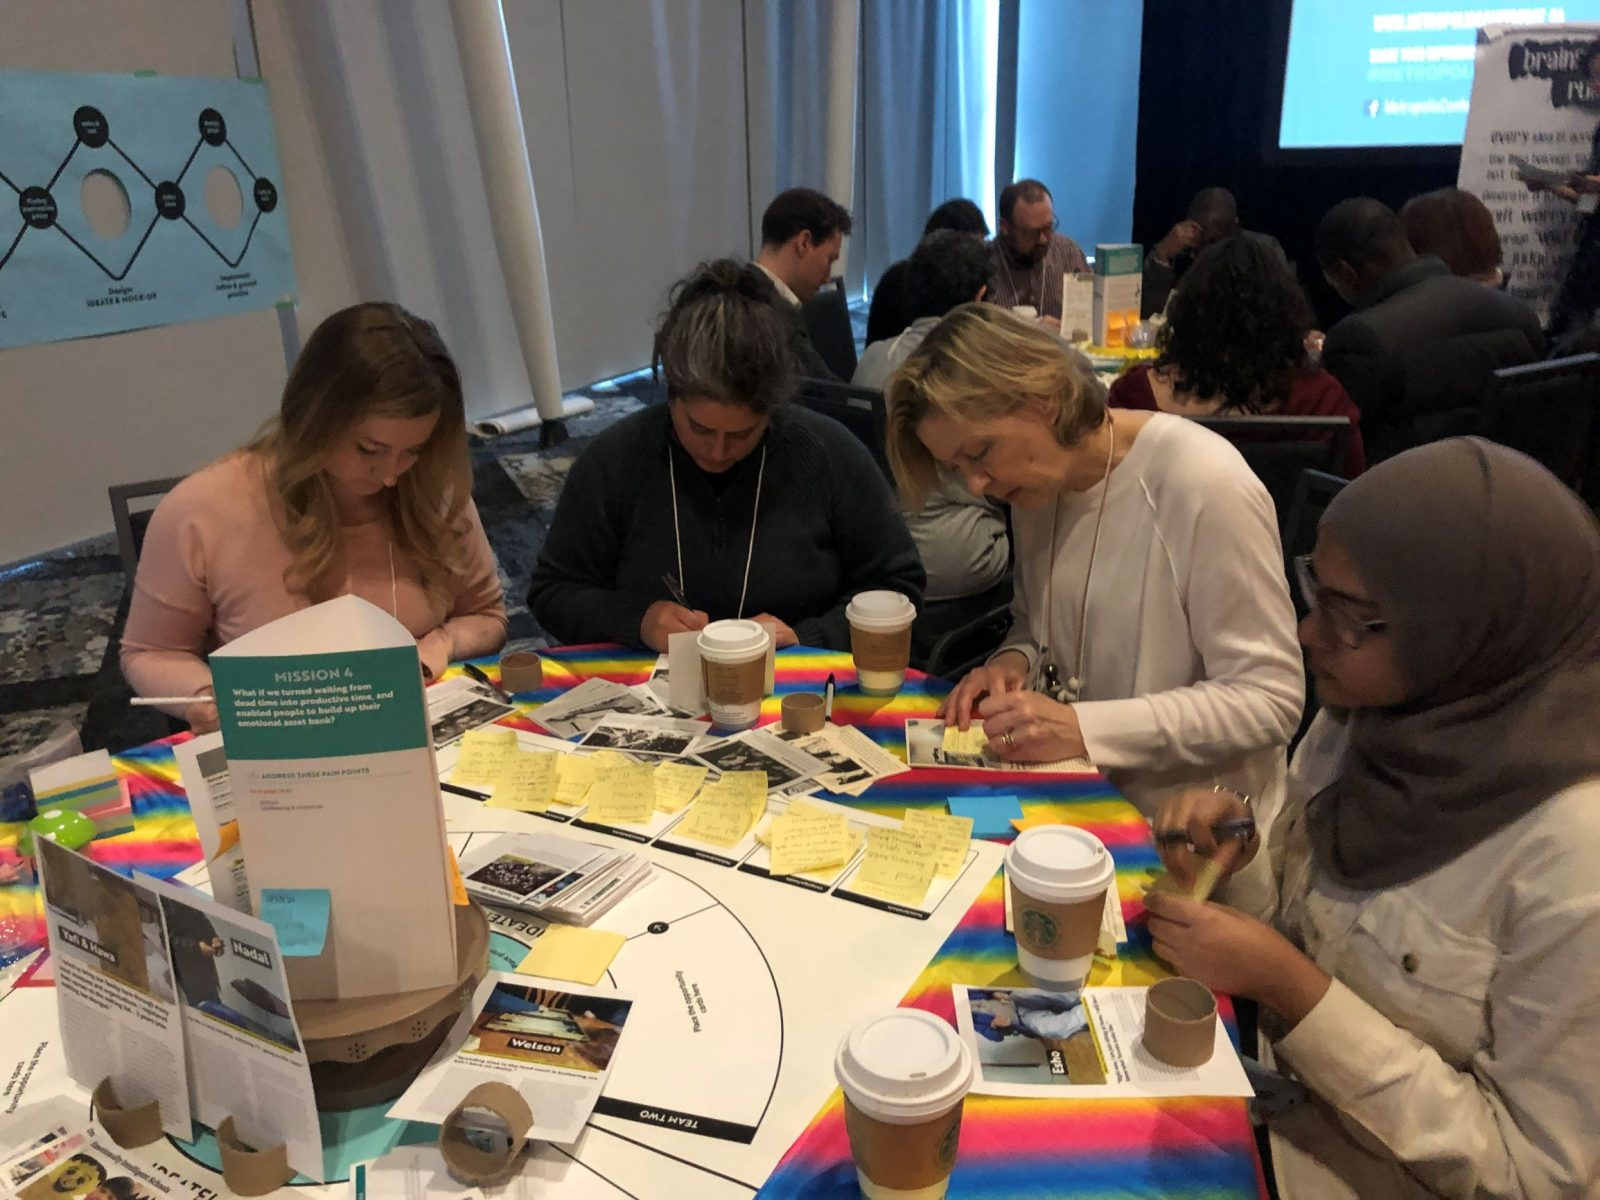 A group sits around a table covered in a rainbow cloth with a board game atop, writing on post-its, surrounded by coffee cups